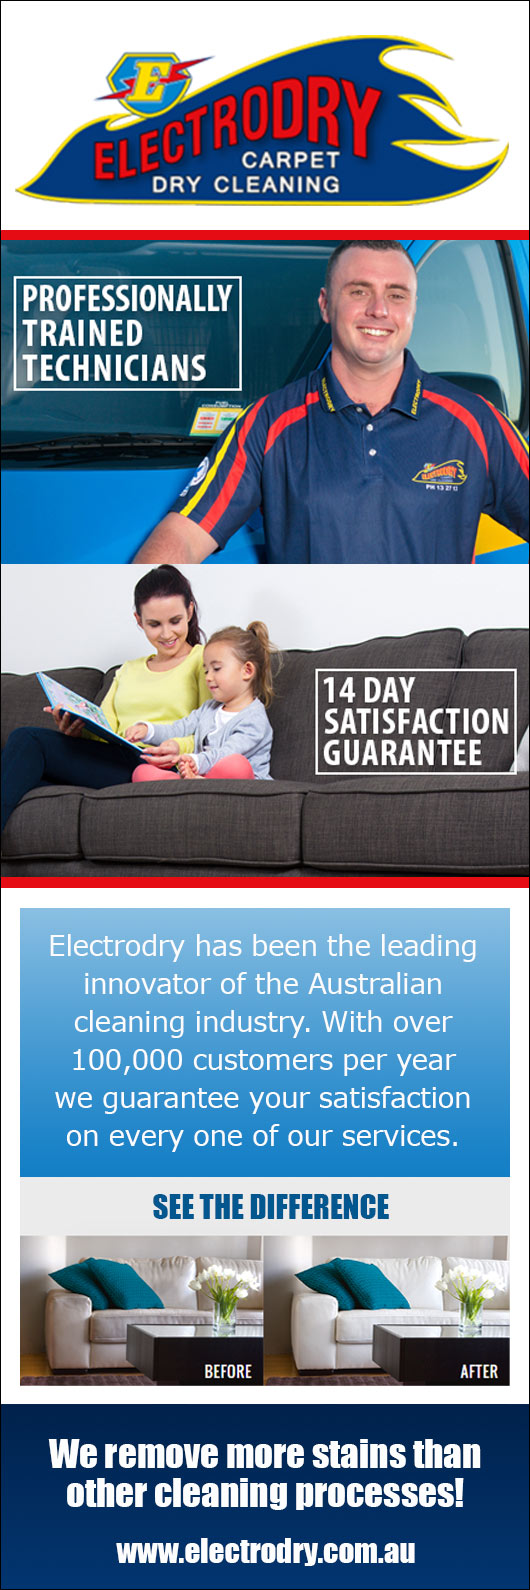 Electrodry carpet dry cleaning promotion